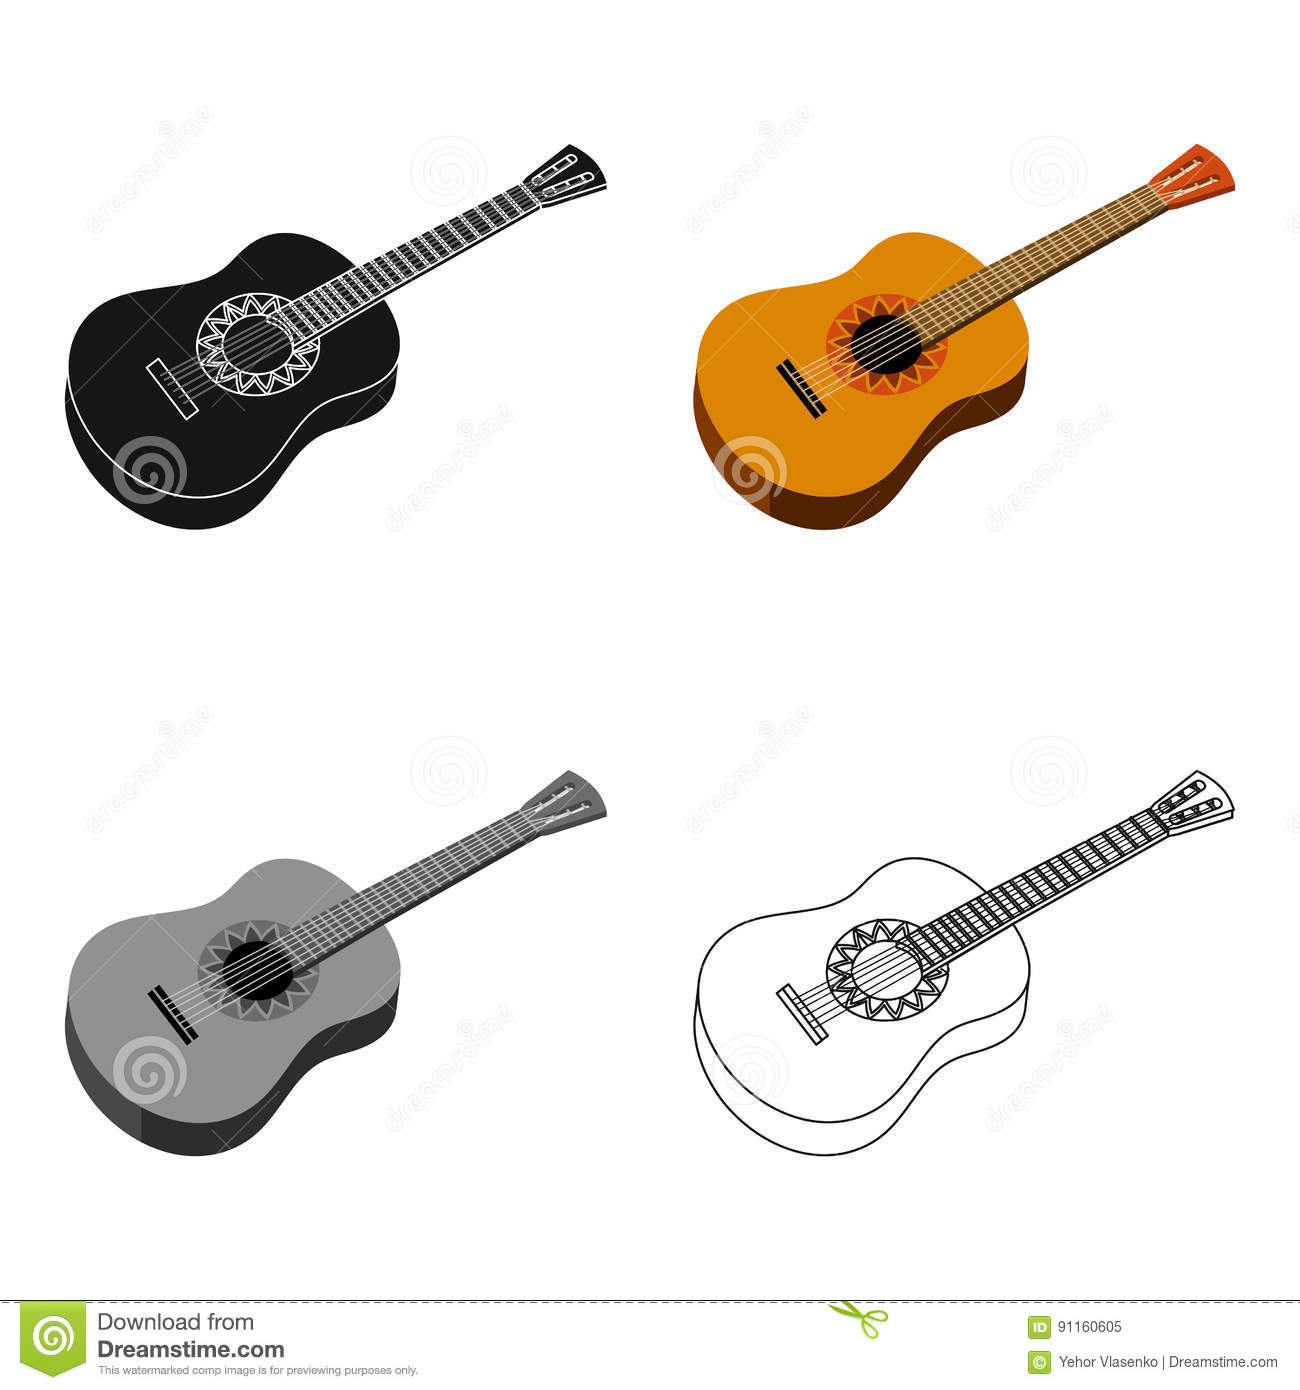 mexican acoustic guitar icon in cartoon style isolated on white background mexico country. Black Bedroom Furniture Sets. Home Design Ideas